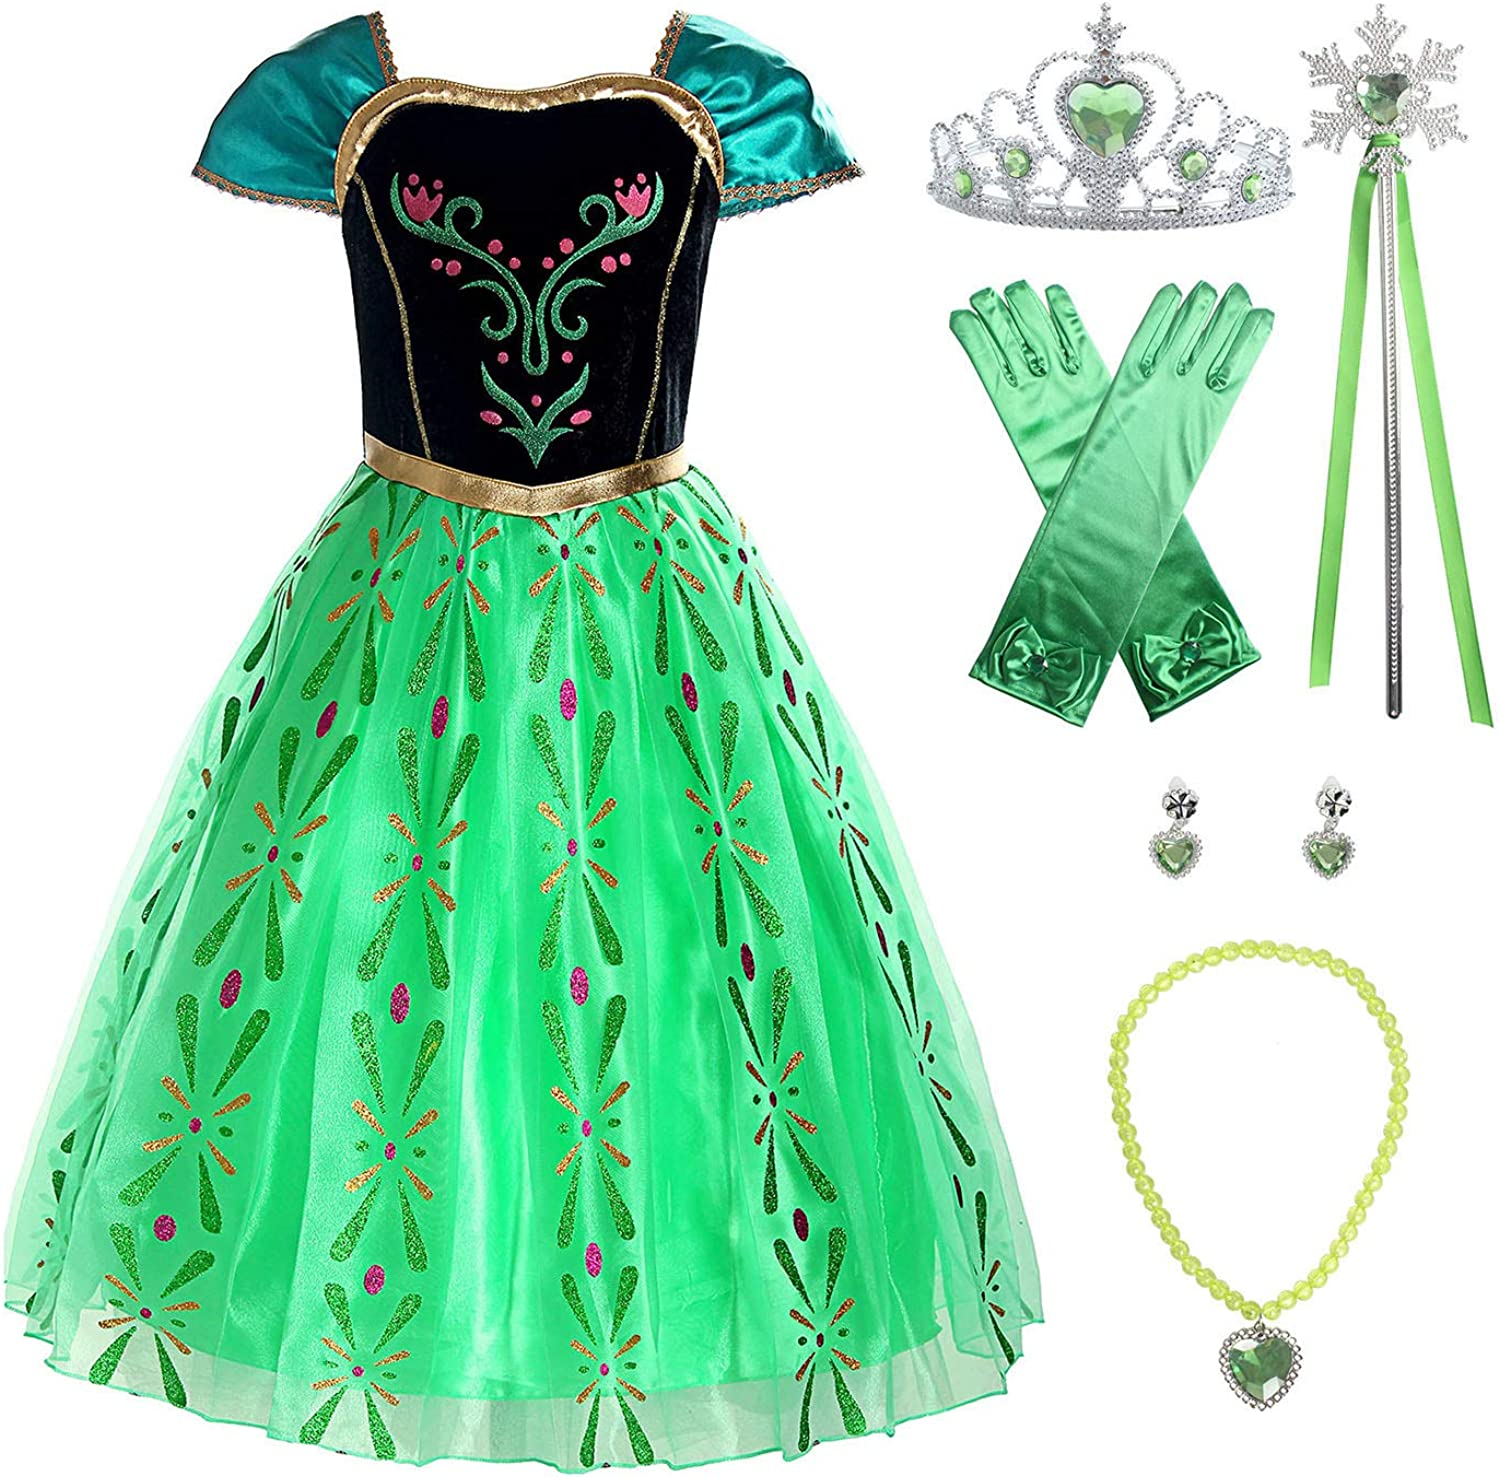 ReliBeauty Girls Shipping included Princess Costume Dress up Apple Green Fashion